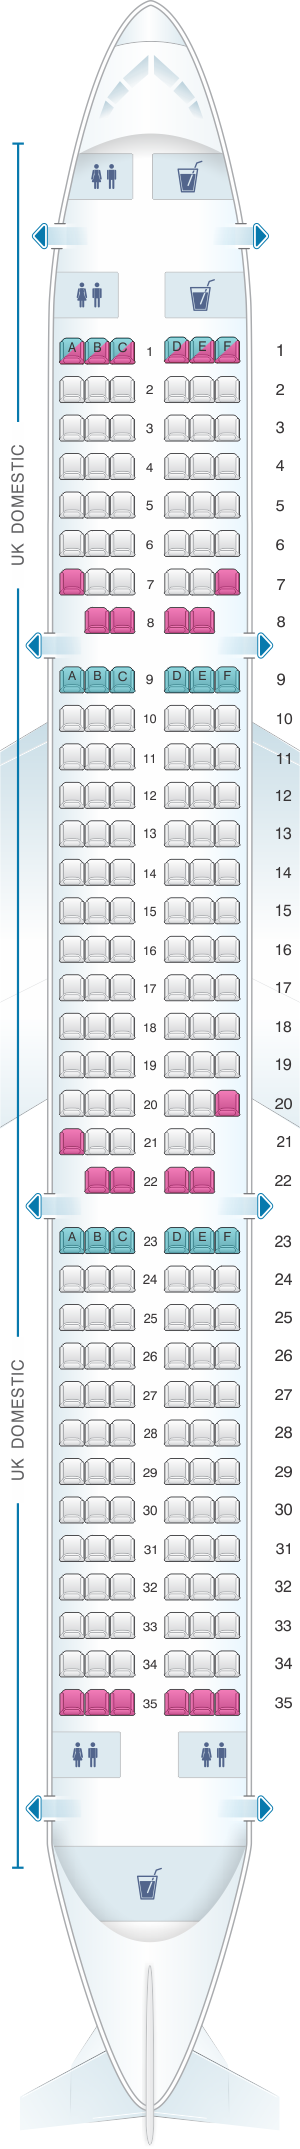 Seat map for British Airways Airbus A321 Domestic Layout